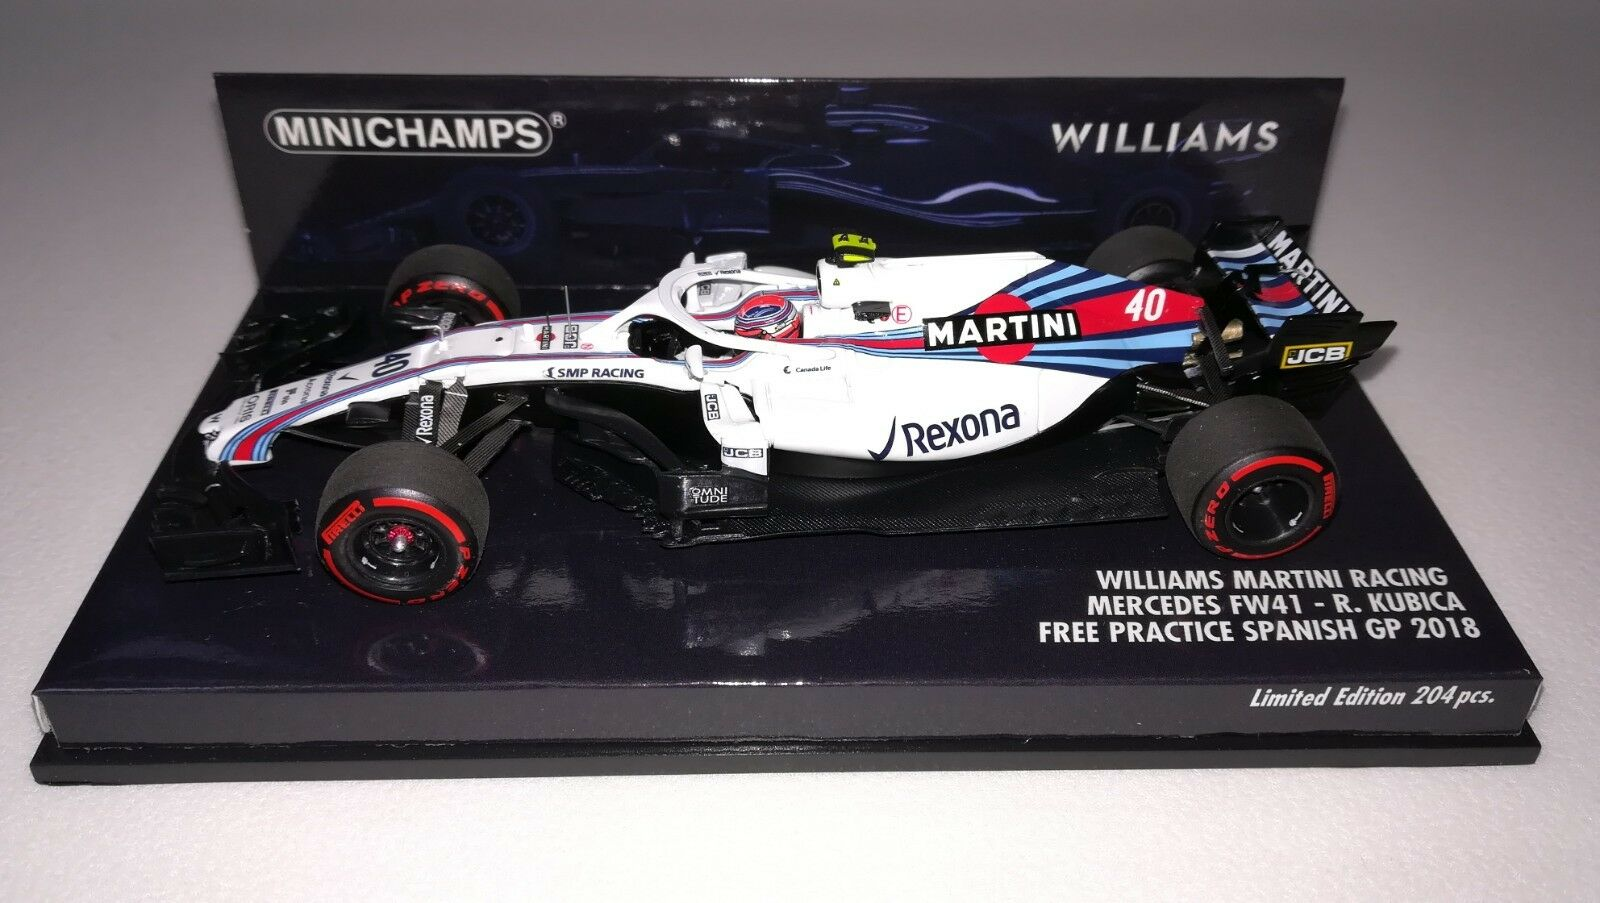 Minichamps F1 Williams FW41 Robert Kubica 1 43 Free Practice Spanish GP 2018